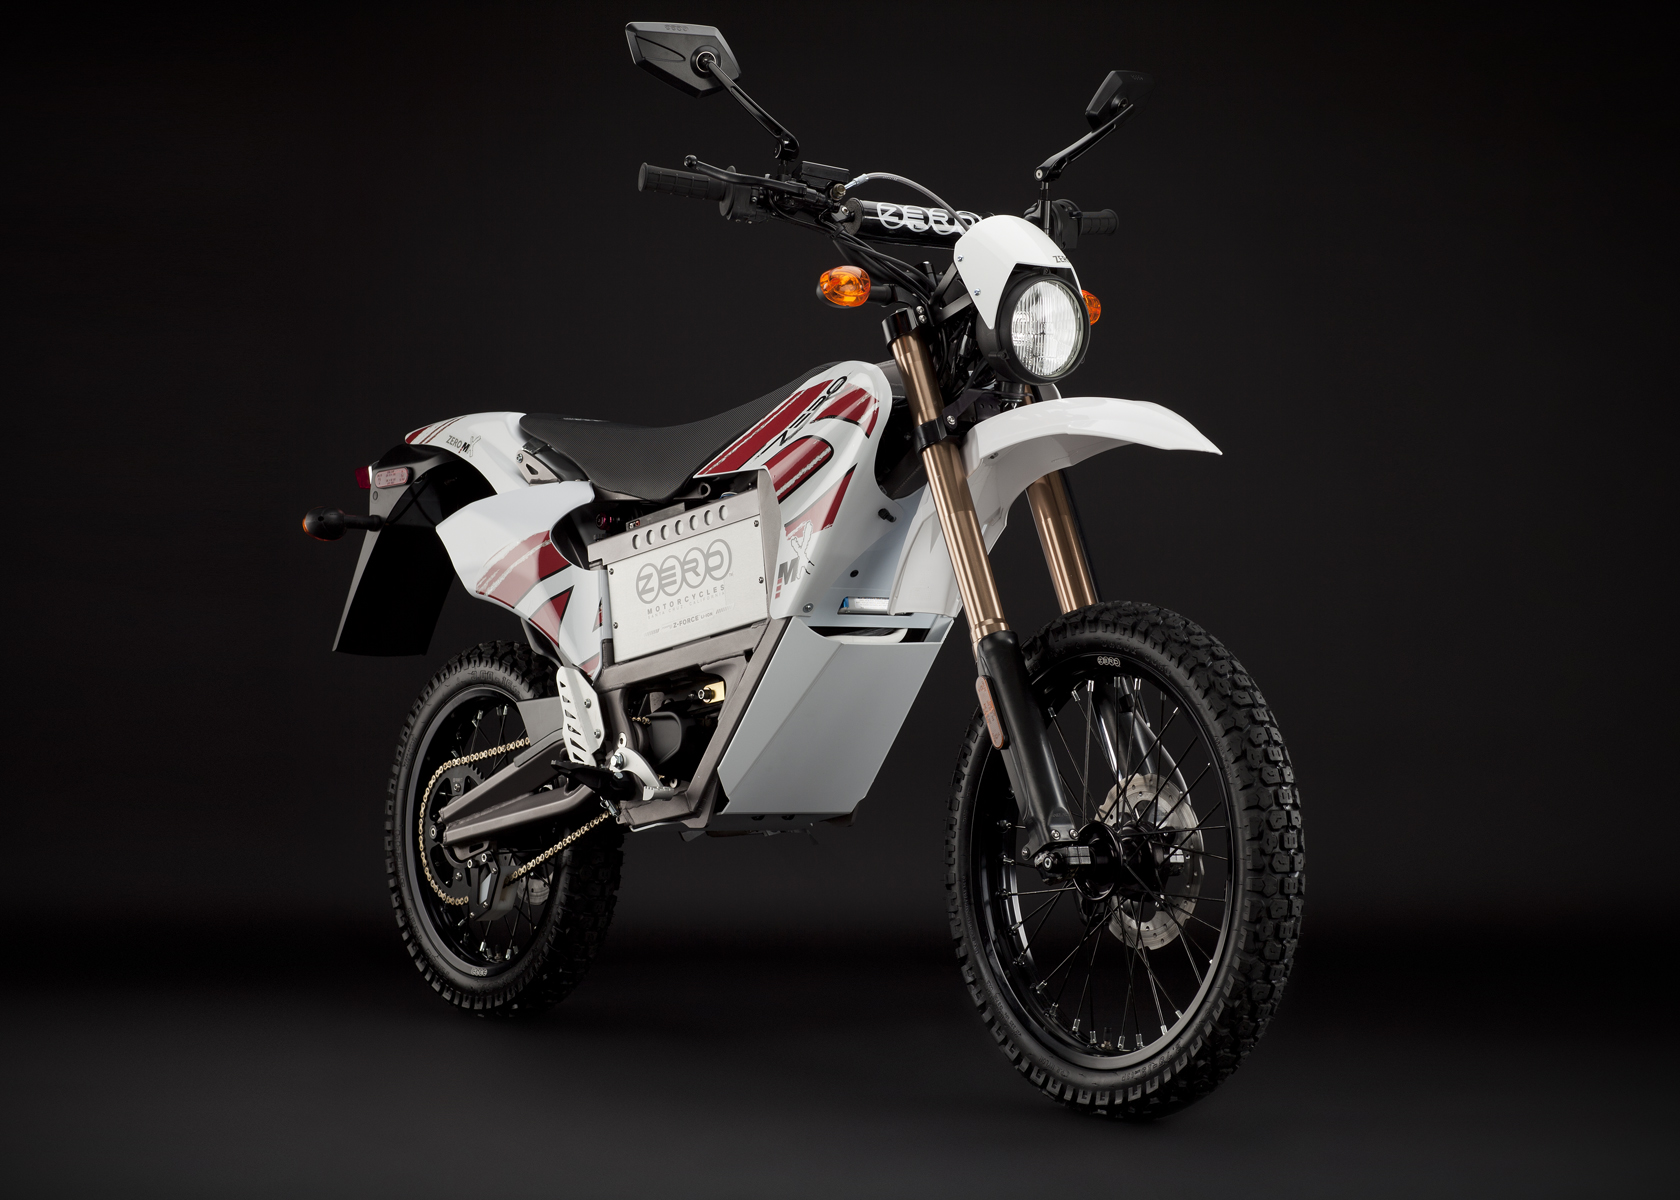 '.2011 Zero MX Electric Motorcycle: Right Angle, Street Legal Model.'